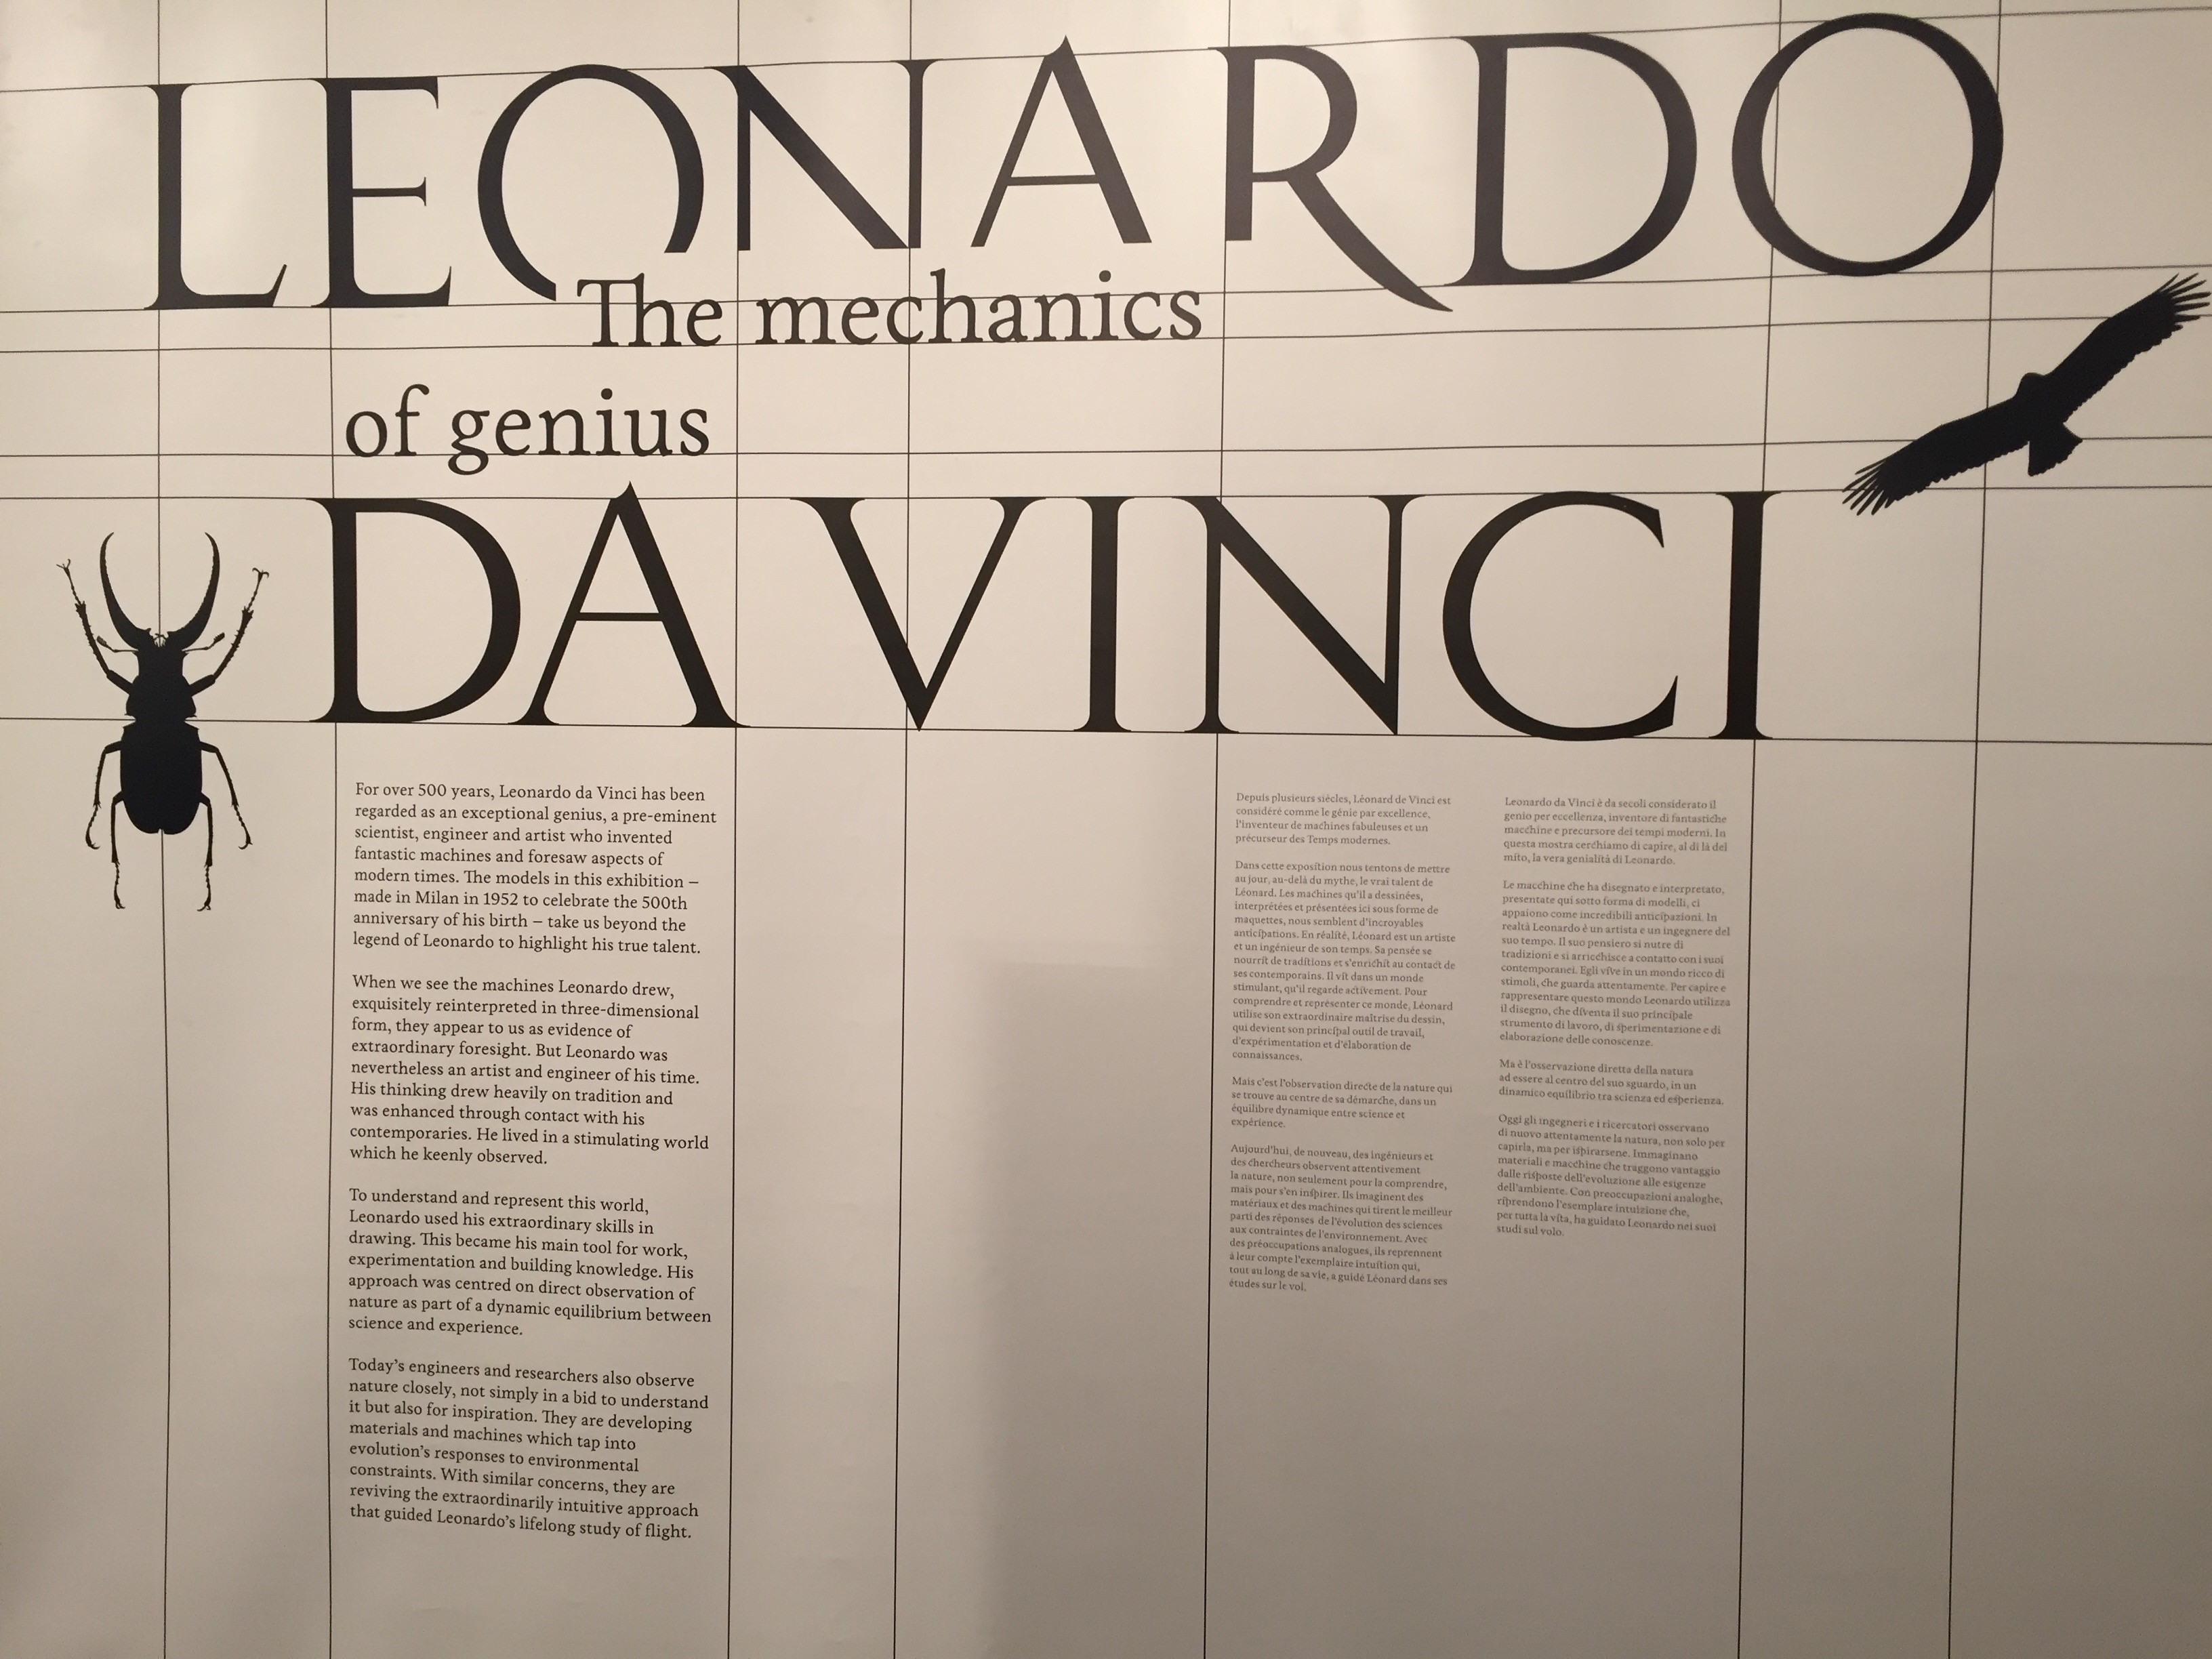 Leonardo da Vinci: The Mechanics of Genius @sciencemuseum